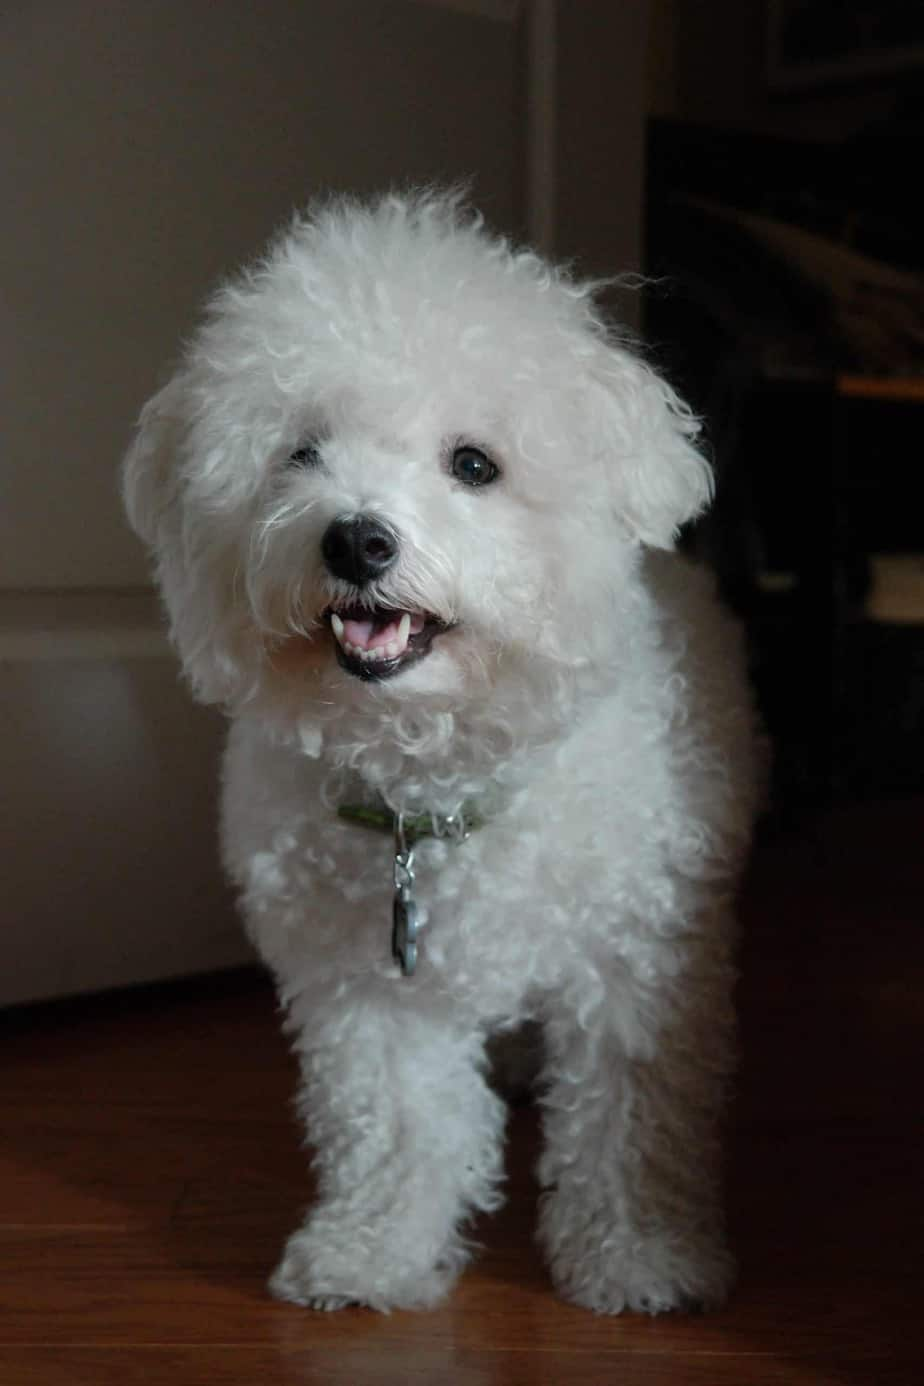 Bichon Frise top 5 cleanest dog breed